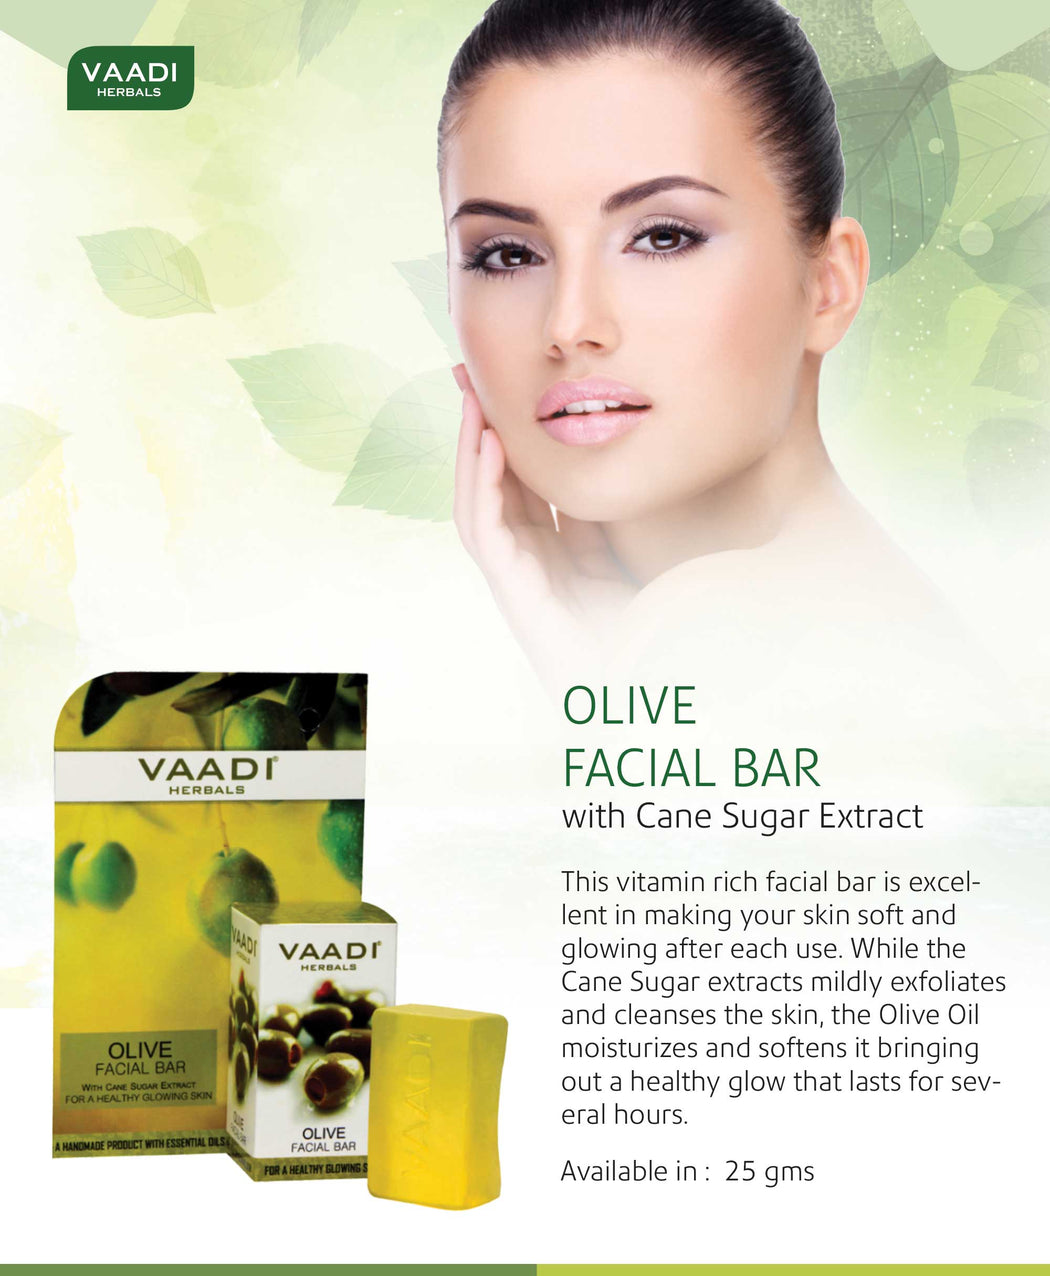 Organic Olive Facial Bar with Cane Sugar Extract - Exfoliates and Cleanses the Skin (4 x 25 gms/0.9 oz)